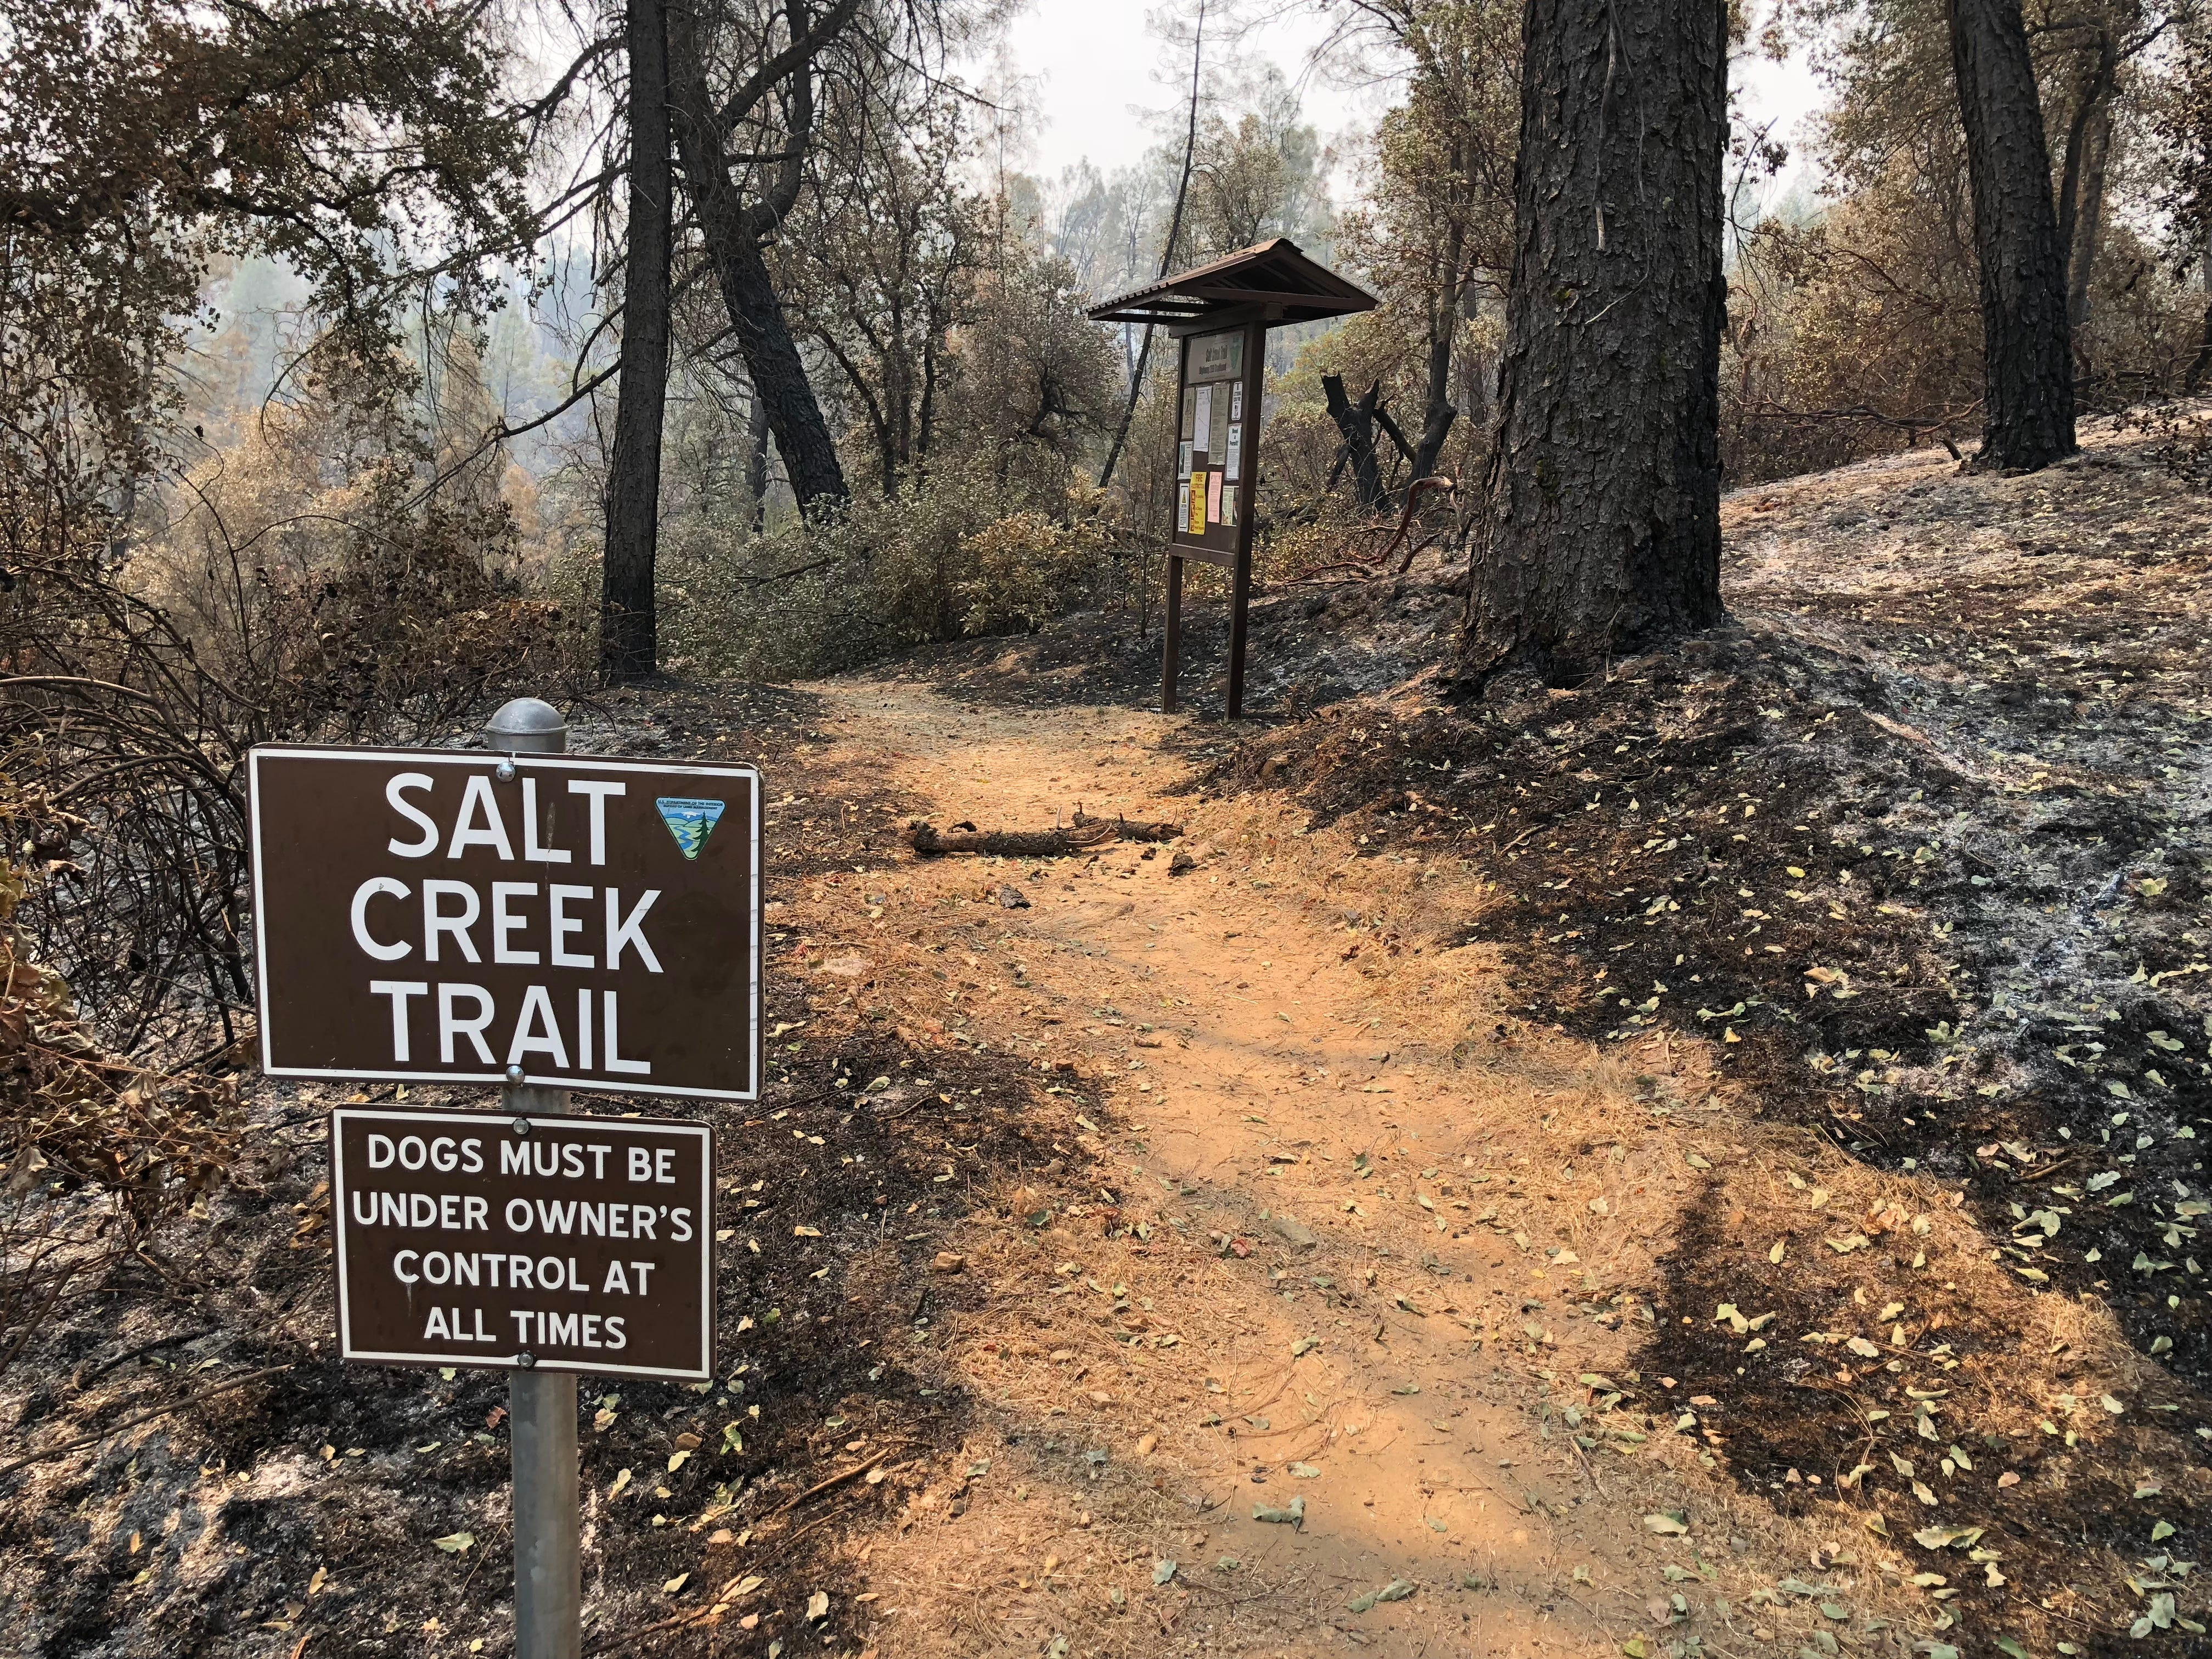 The area near the Salt Creek Trail is closed to the public as officials repair power lines and clear brush in the vicinity. This parking area off Highway 299 for Salt Creek Trail has significant burn damage and smoky air.